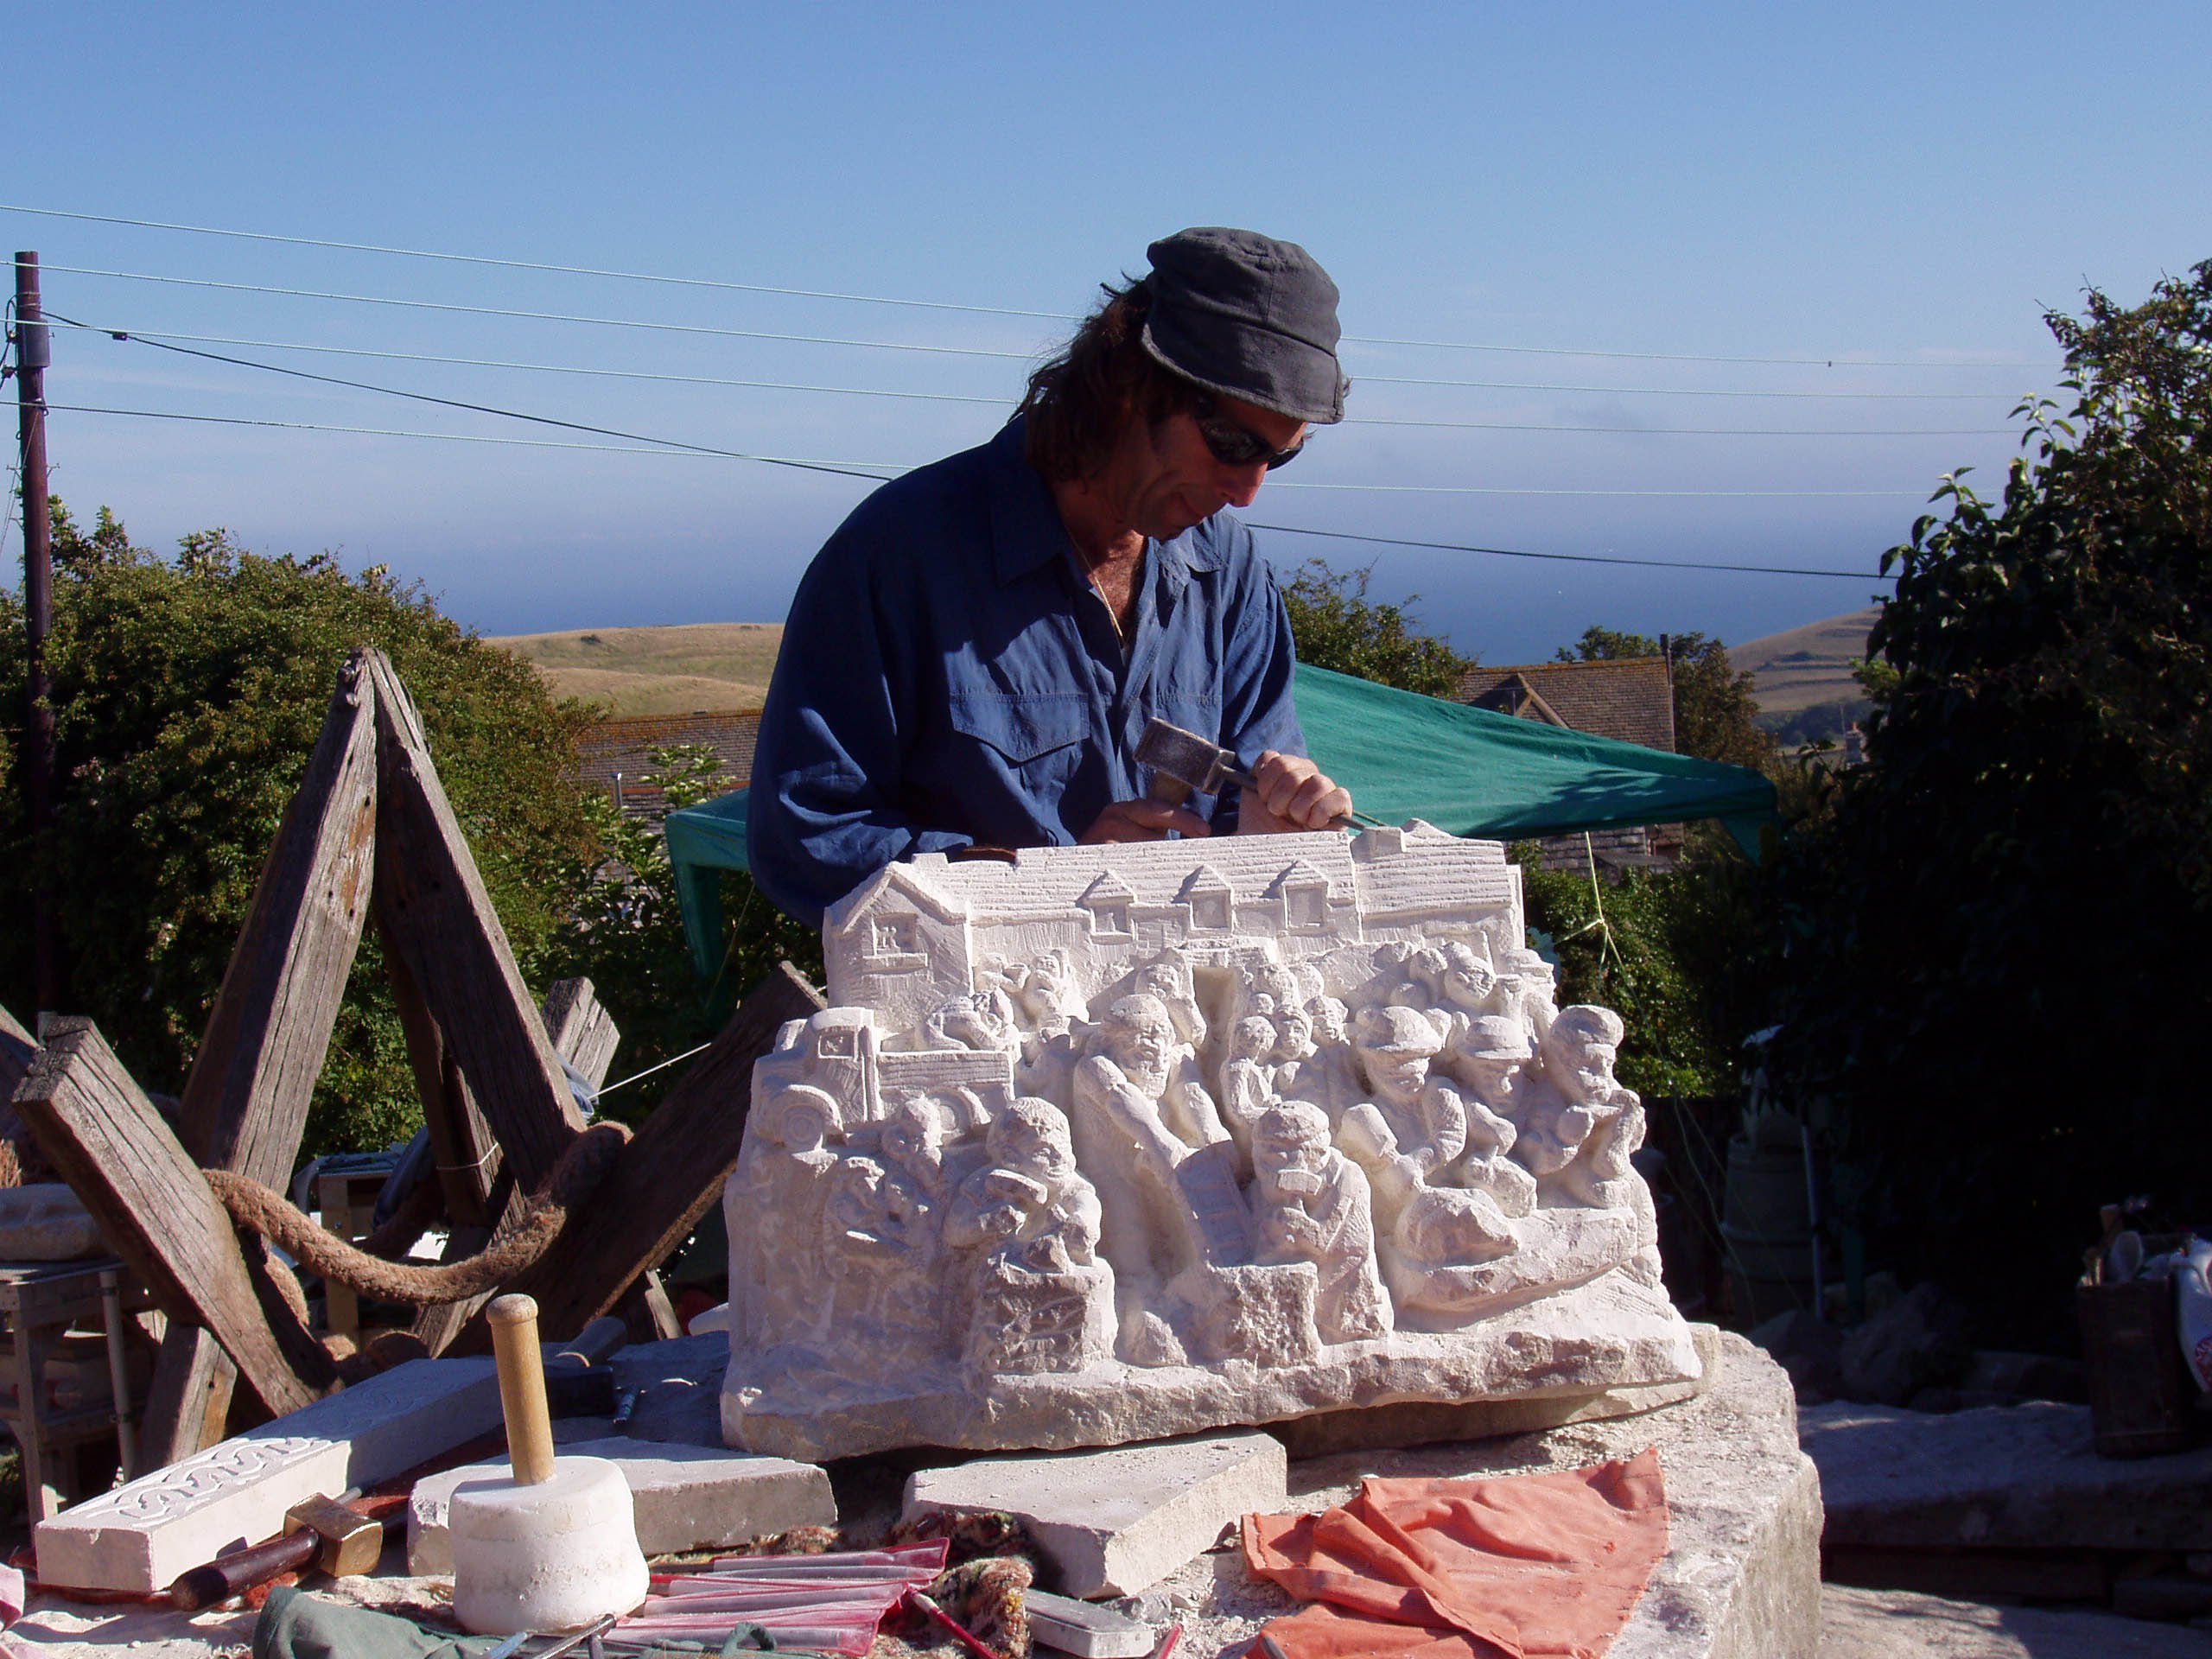 Jonathan Sells at The Square & Compass stone carving event